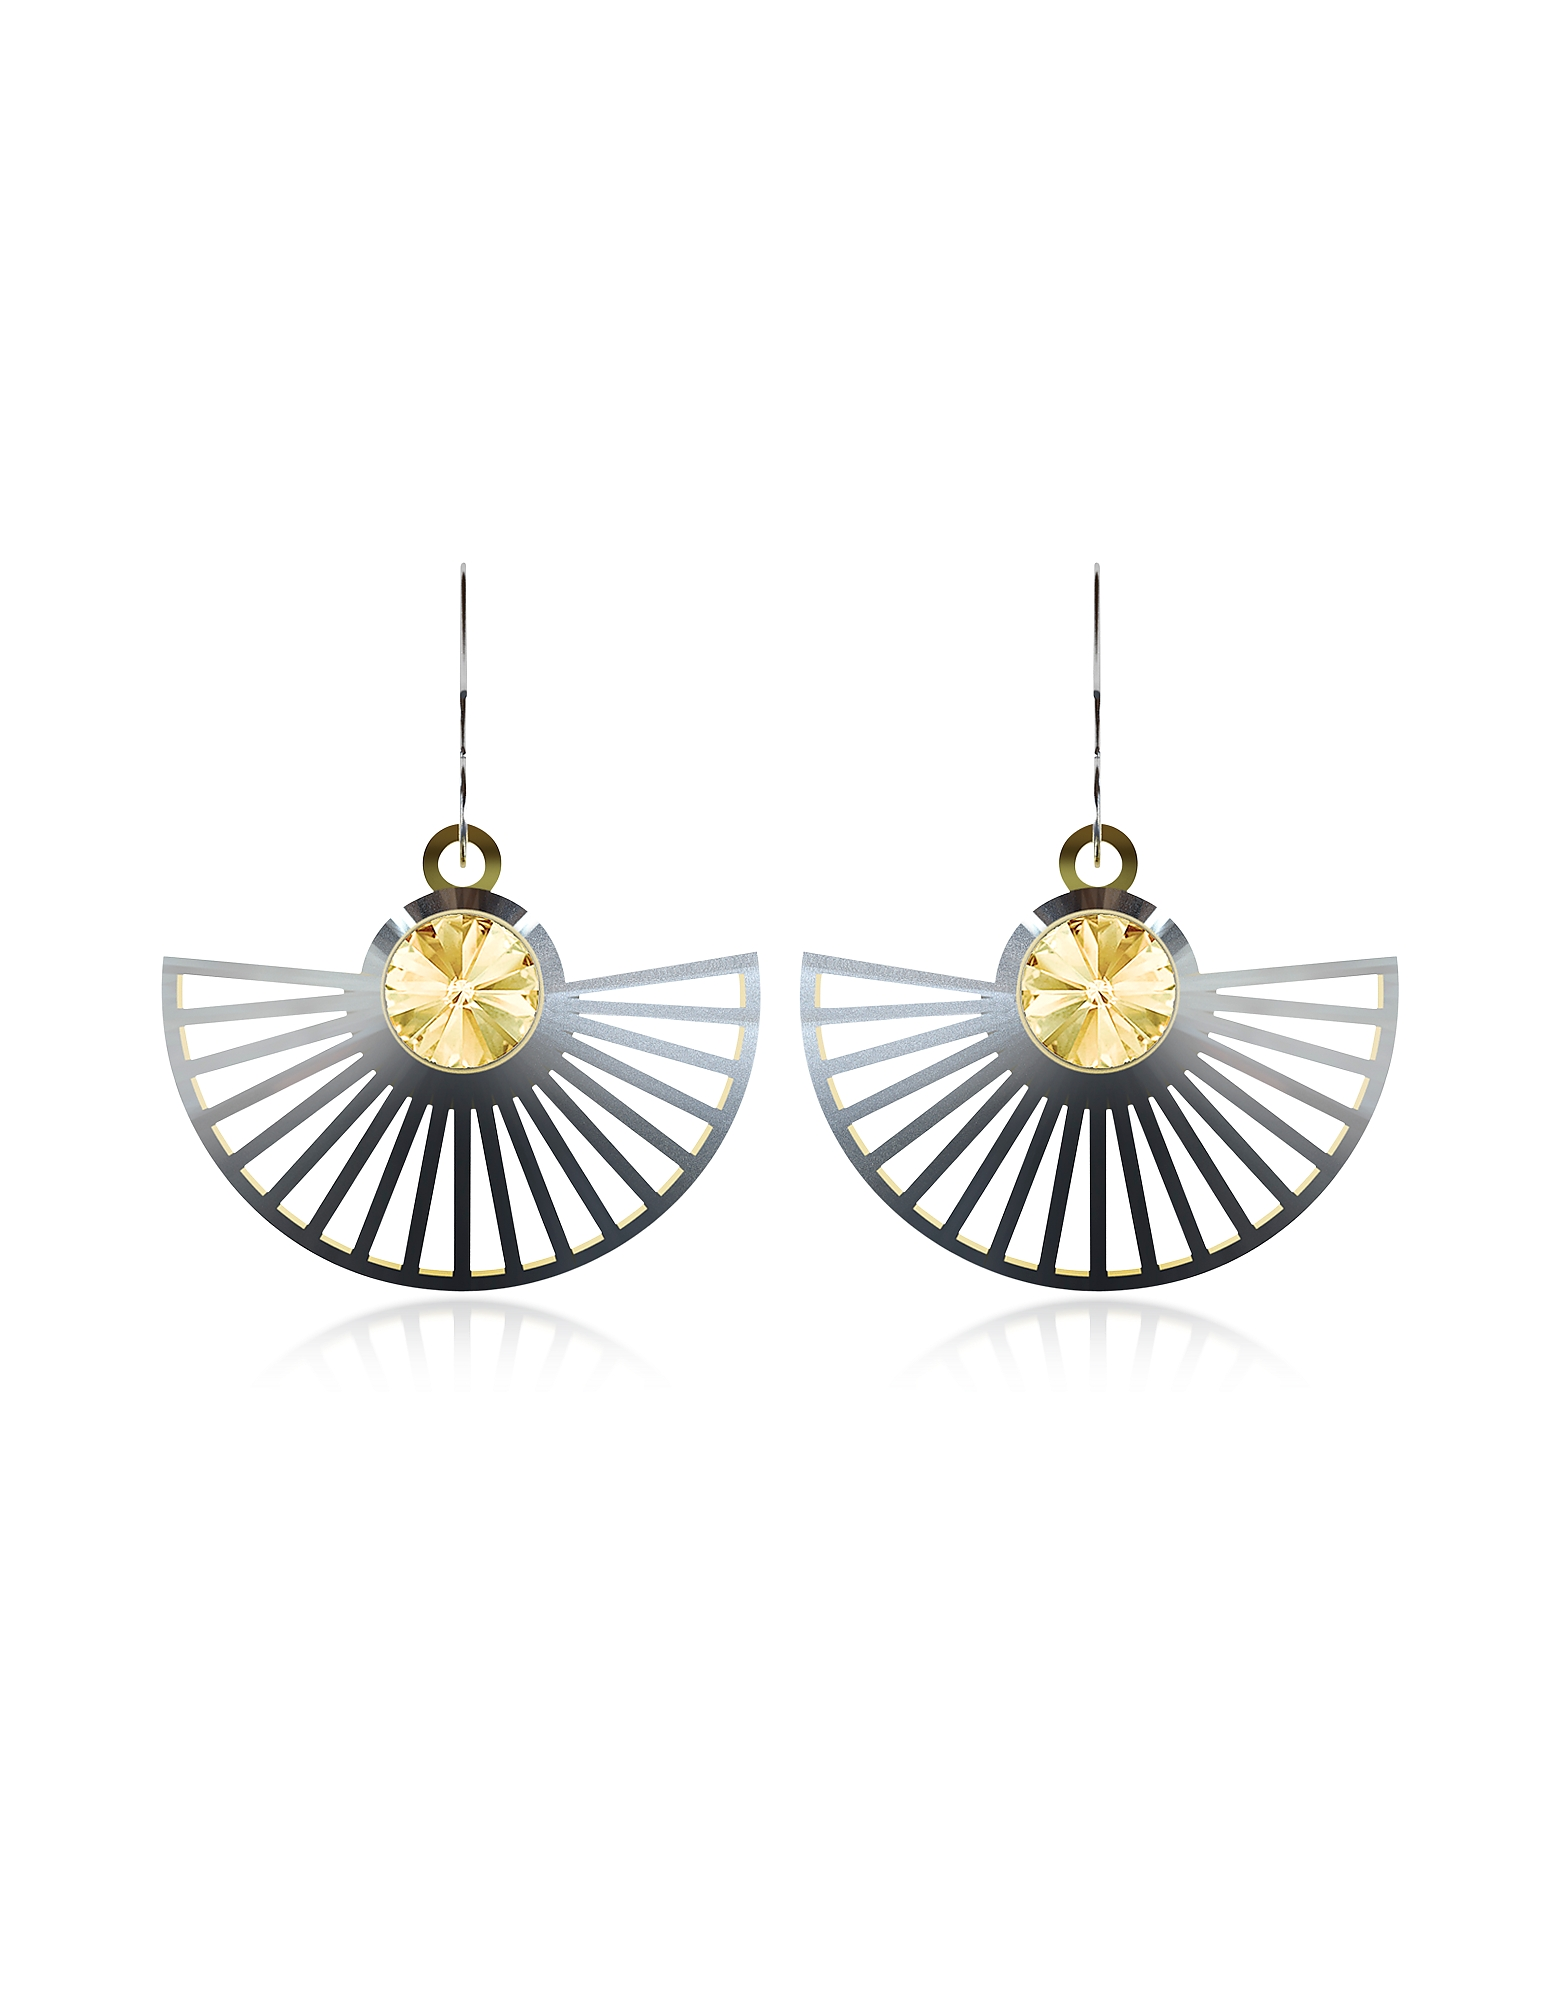 Vojd Studios Designer Earrings, Phase Precious Sterling Silver Fan Dangle Earrings